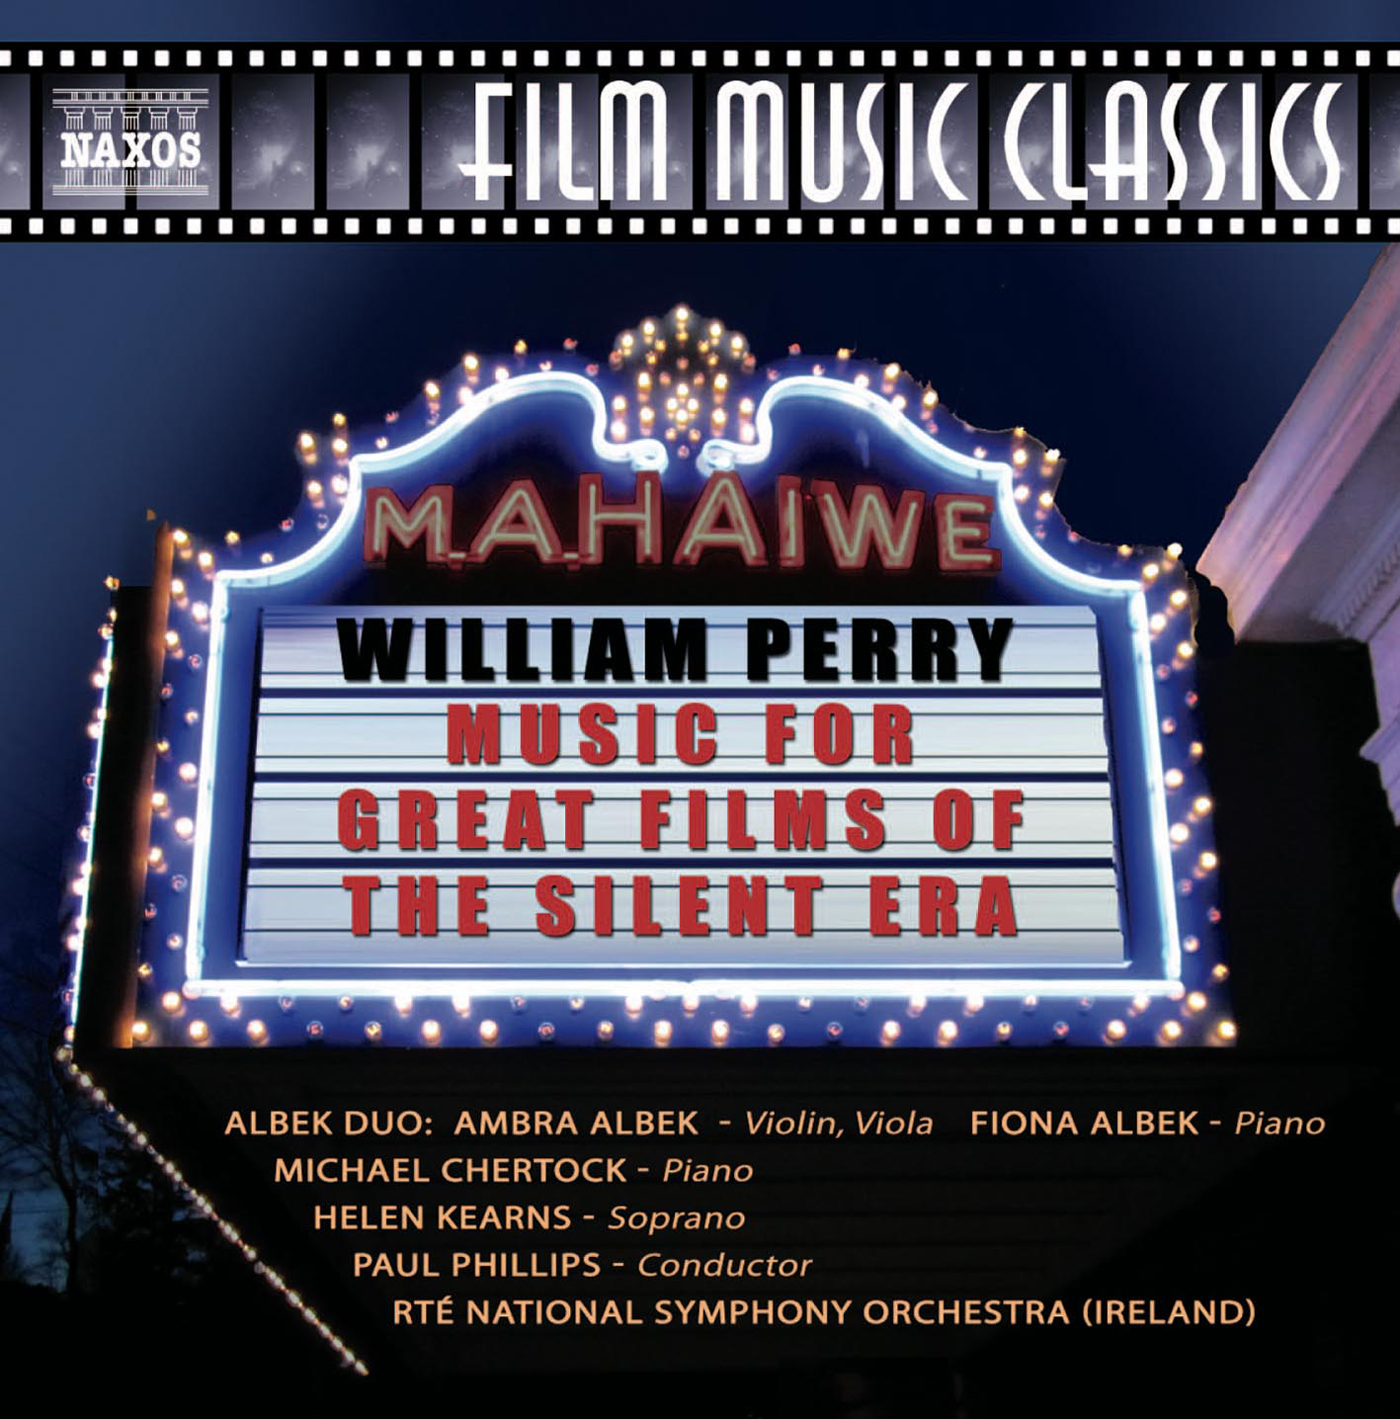 Perry: Music for Great Films of the Silent Era, Vol. 1